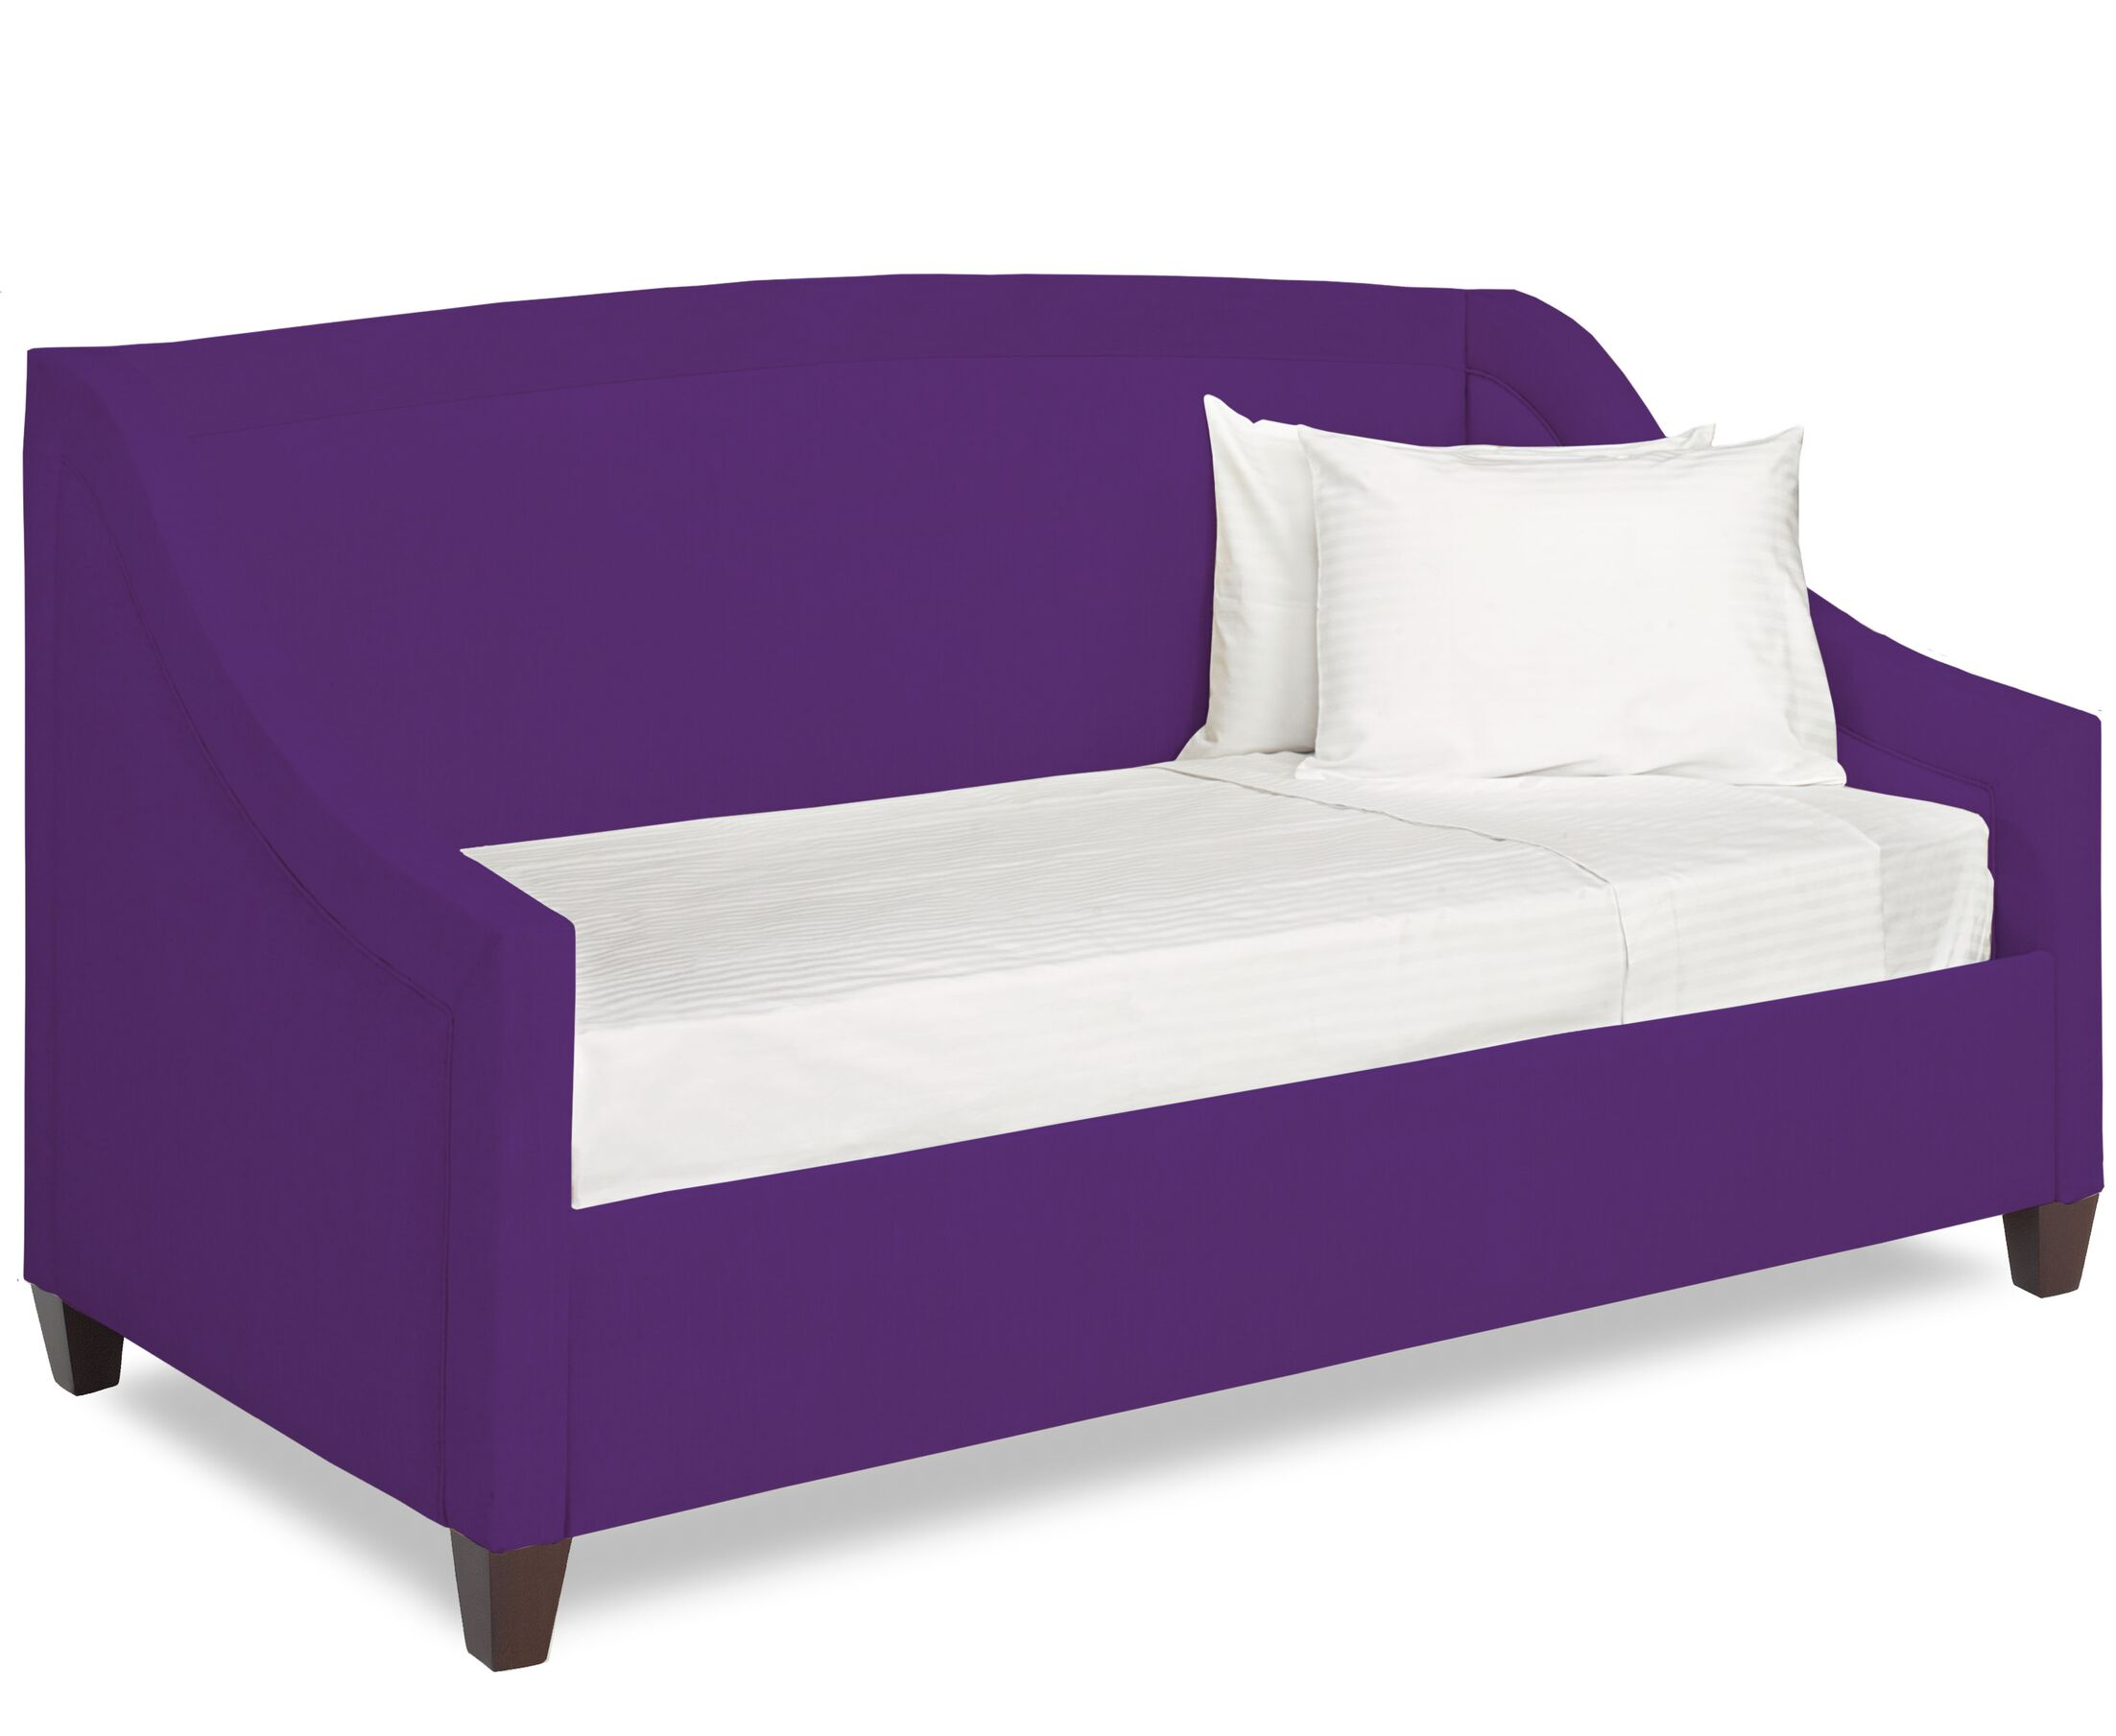 Dreamtime Daybed with Mattress Color: Eggplant, Size: Twin XL